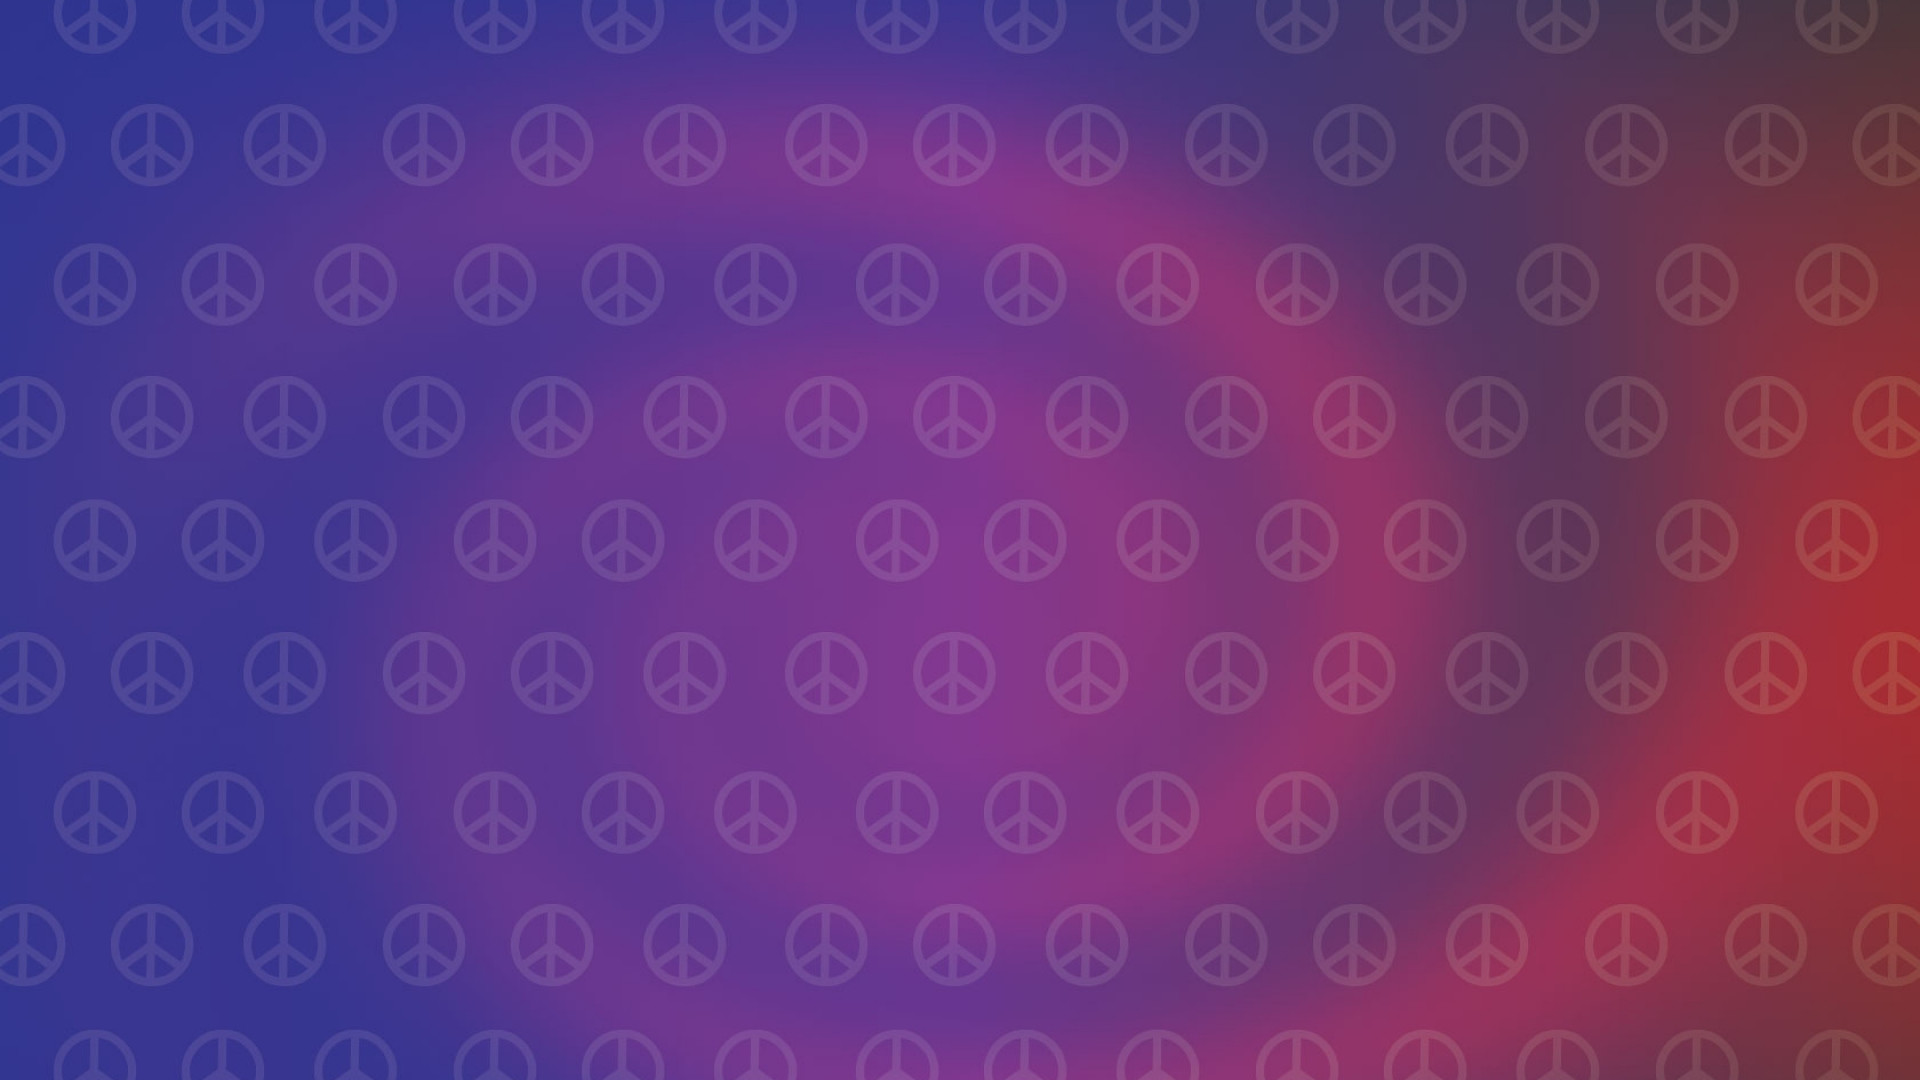 Peace Signs Backgrounds (46+ images)